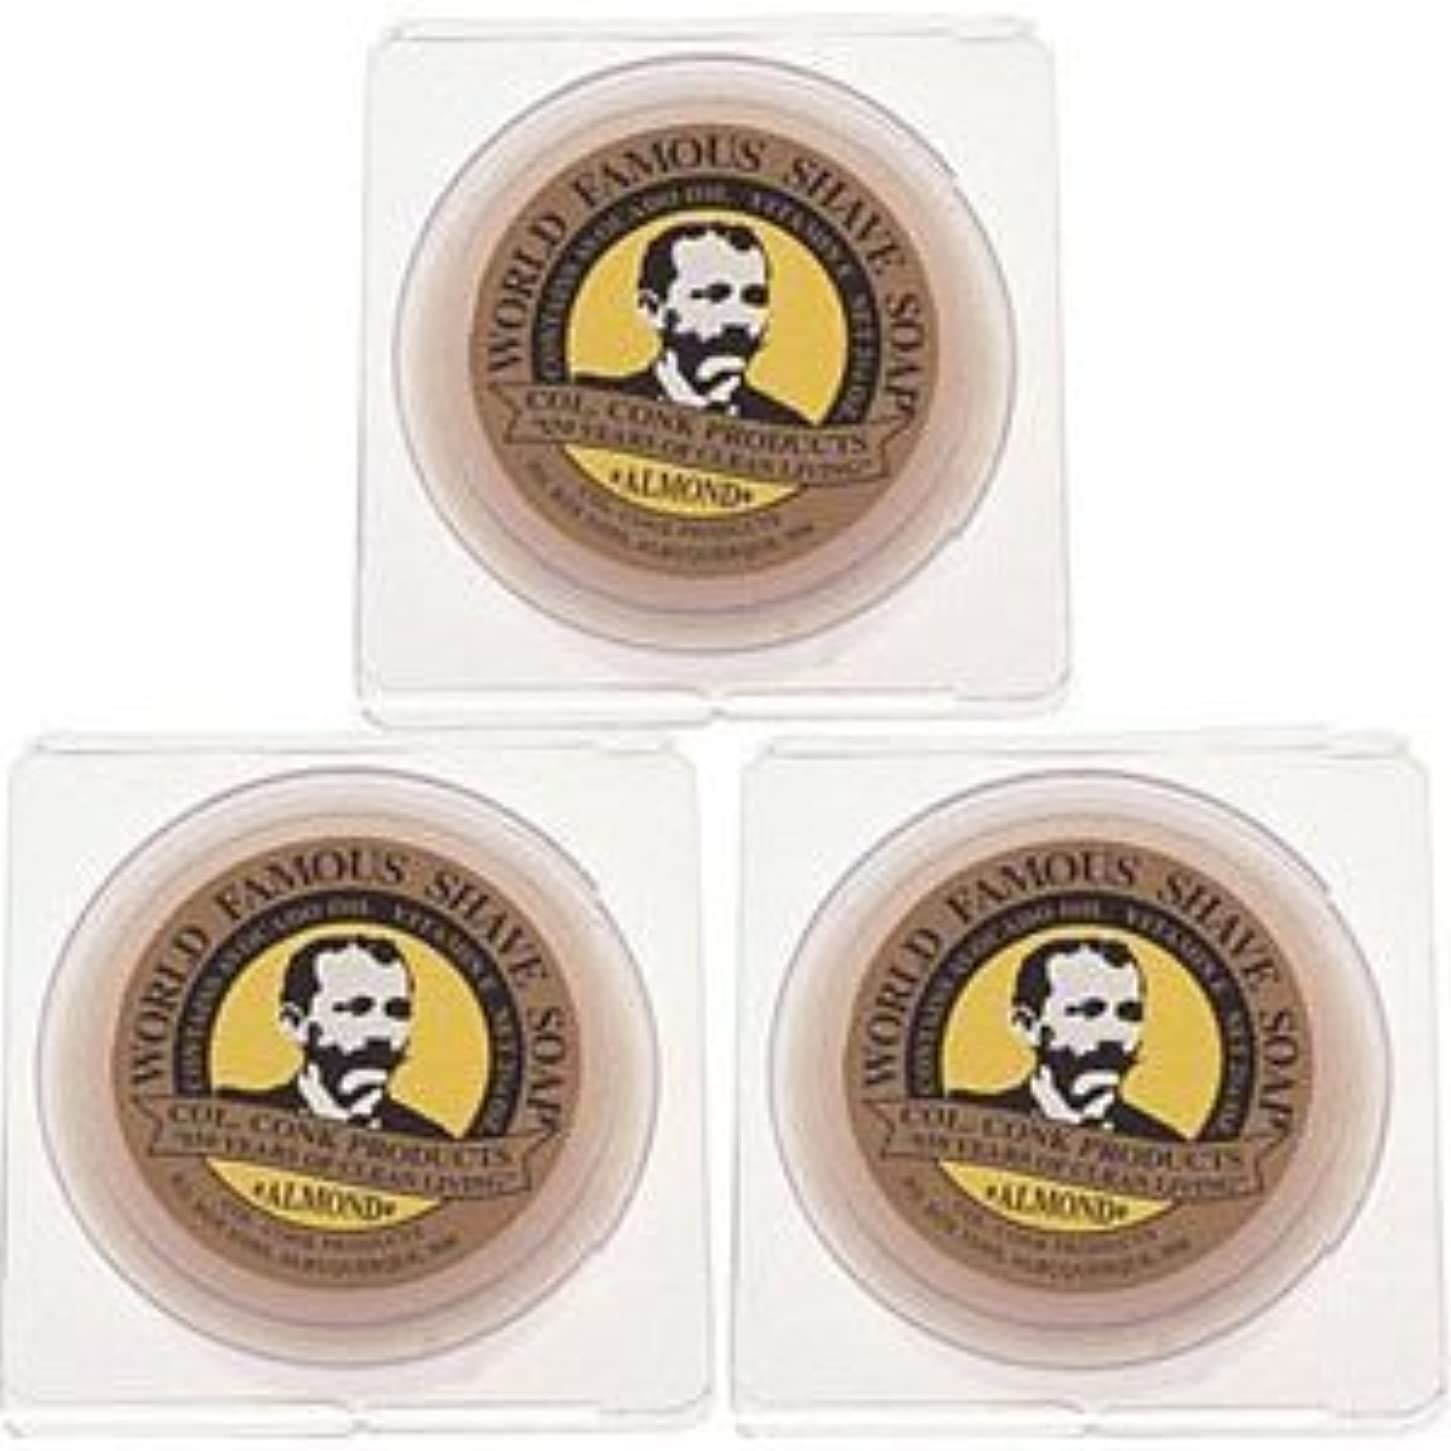 伝導あいにくチョークCol. Conk World's Famous Shaving Soap Almond * 3 - Pack * Each Net Weight 2.25 Oz by Colonel Conk [並行輸入品]